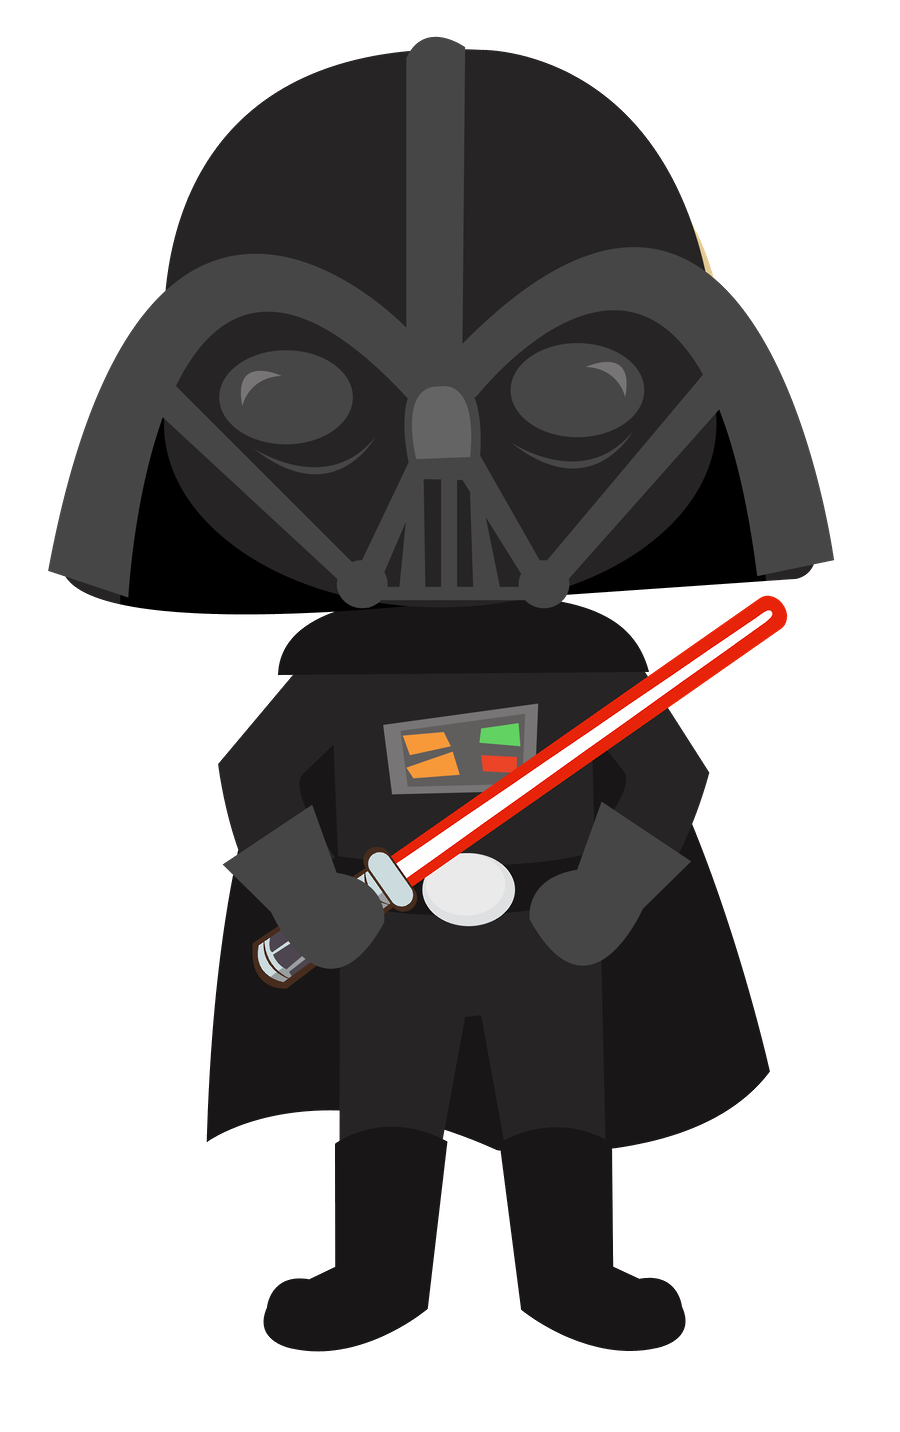 darth vader clipart step by step